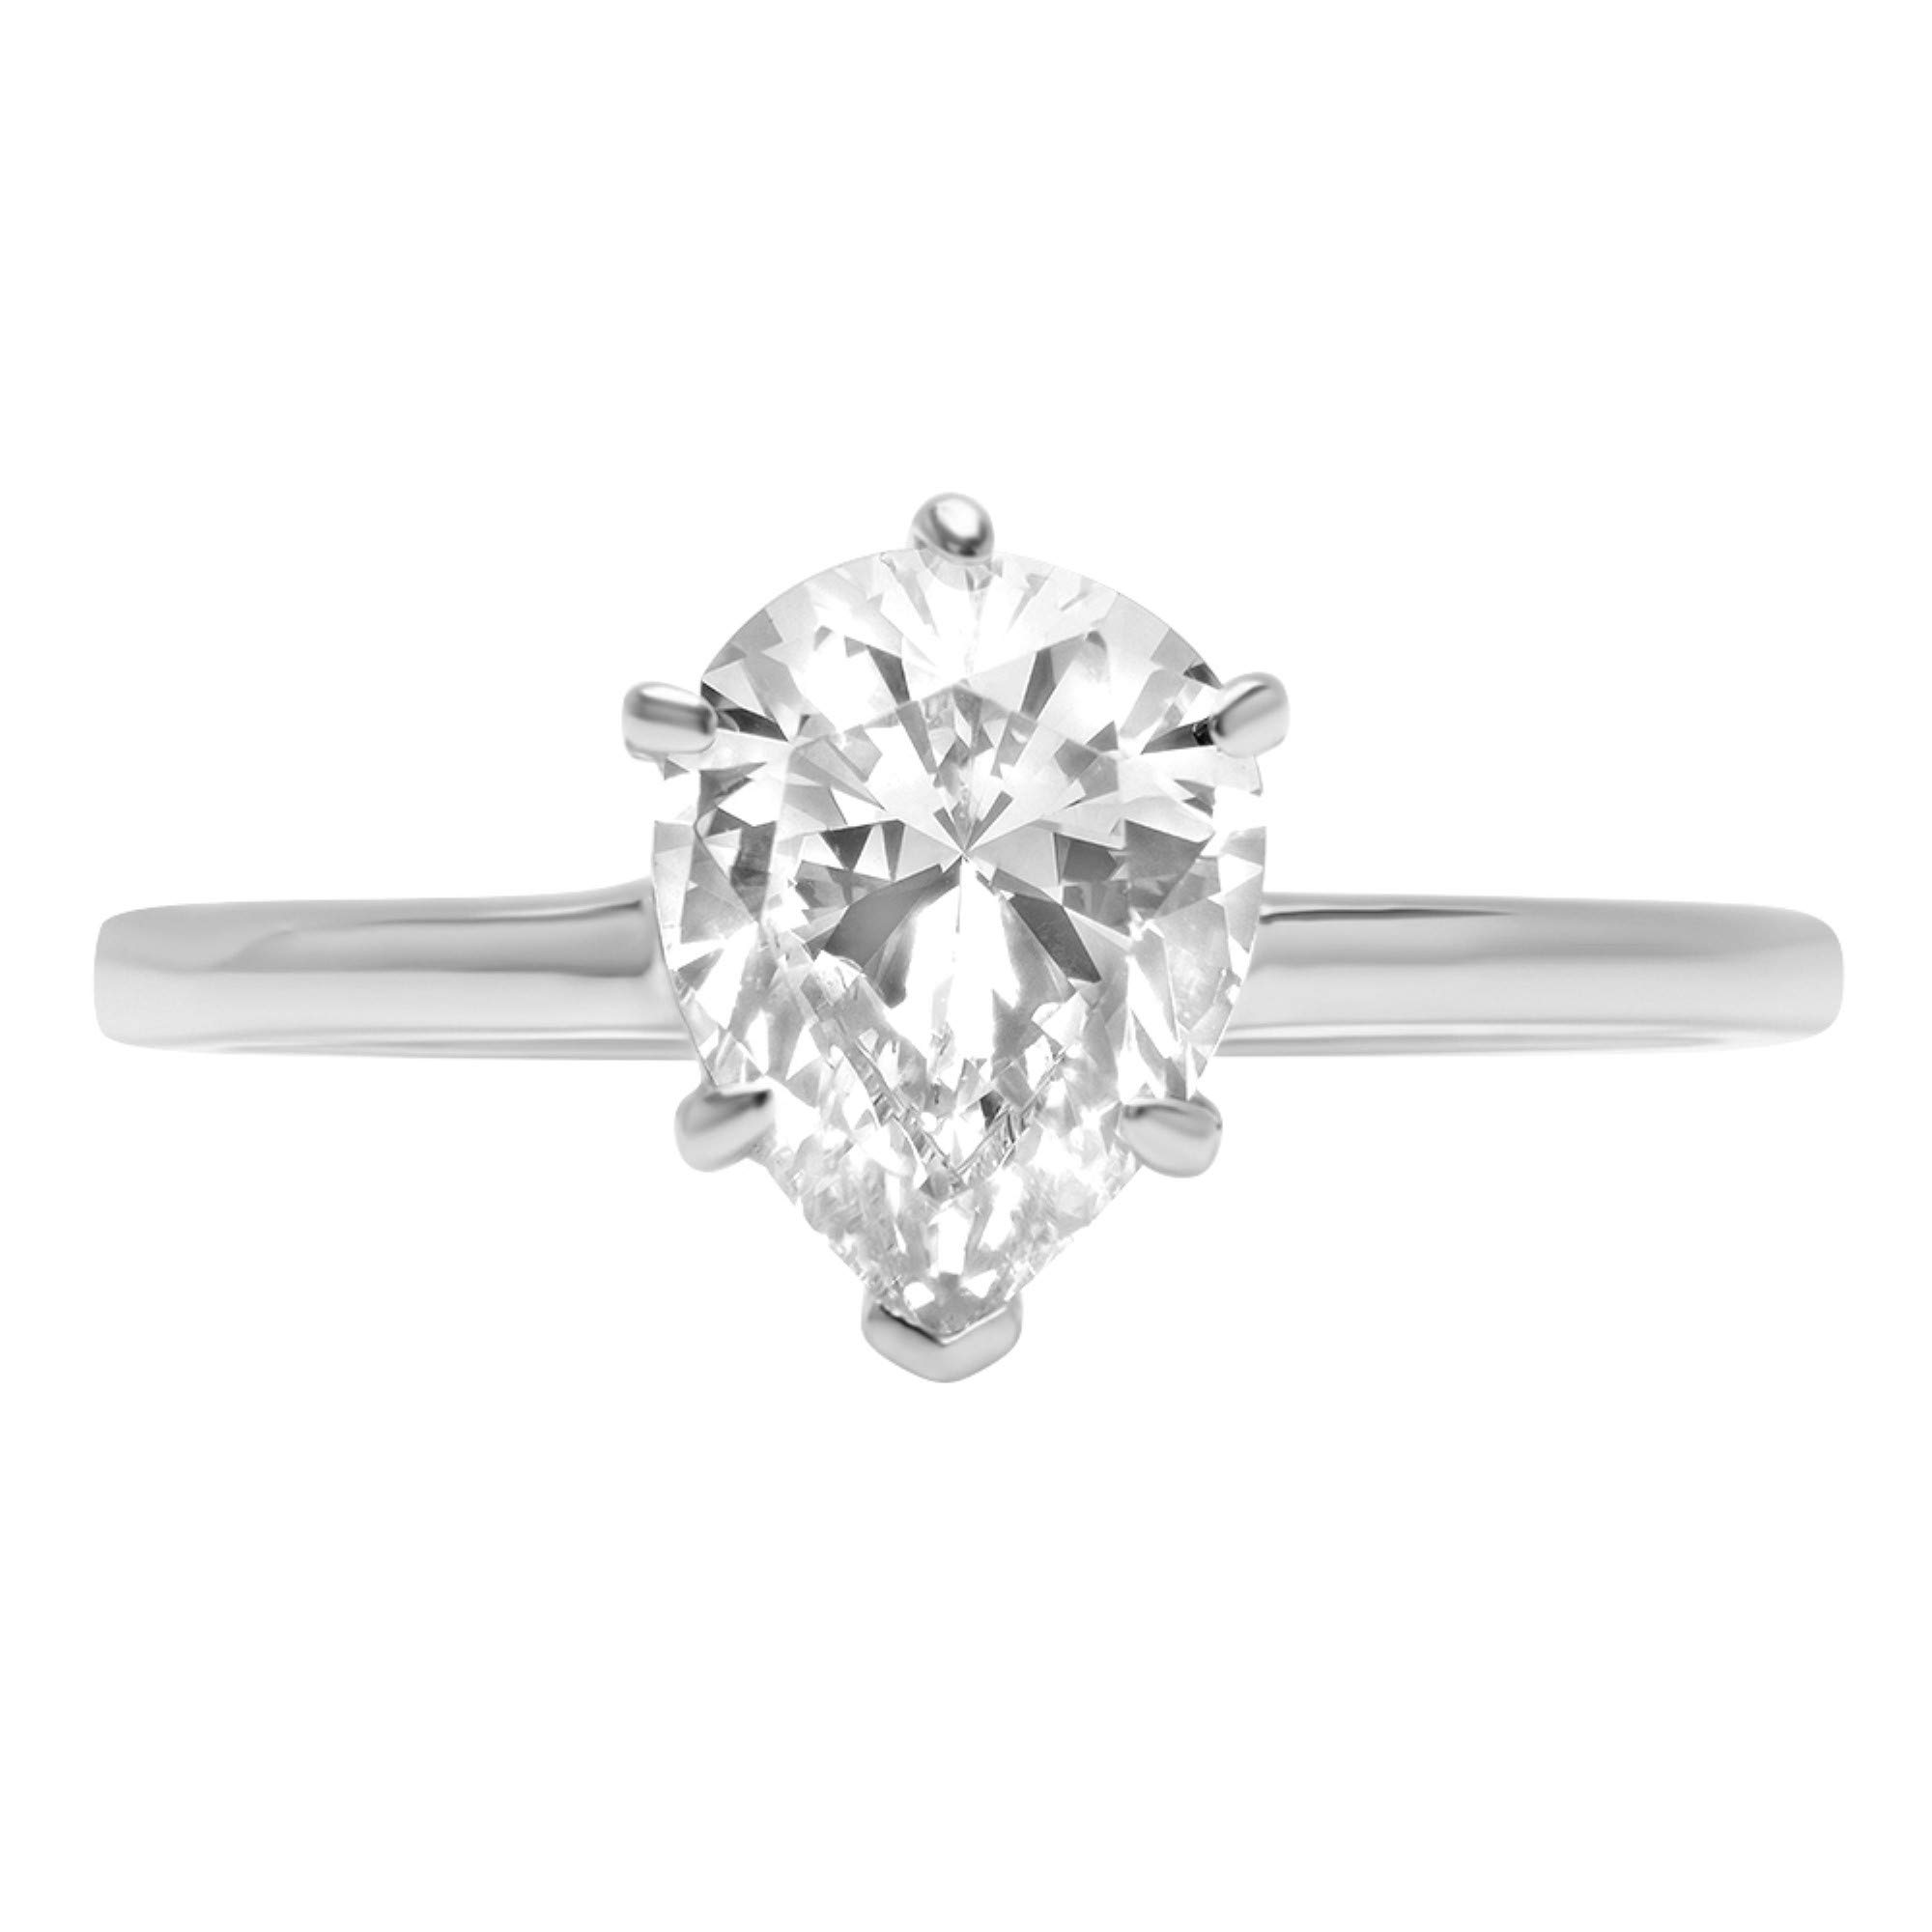 2.50 ct Brilliant Pear Cut Solitaire Highest Quality Moissanite Ideal VVS1 D 6-Prong Engagement Wedding Bridal Promise Anniversary Ring in Solid Real 14k White Gold for Women